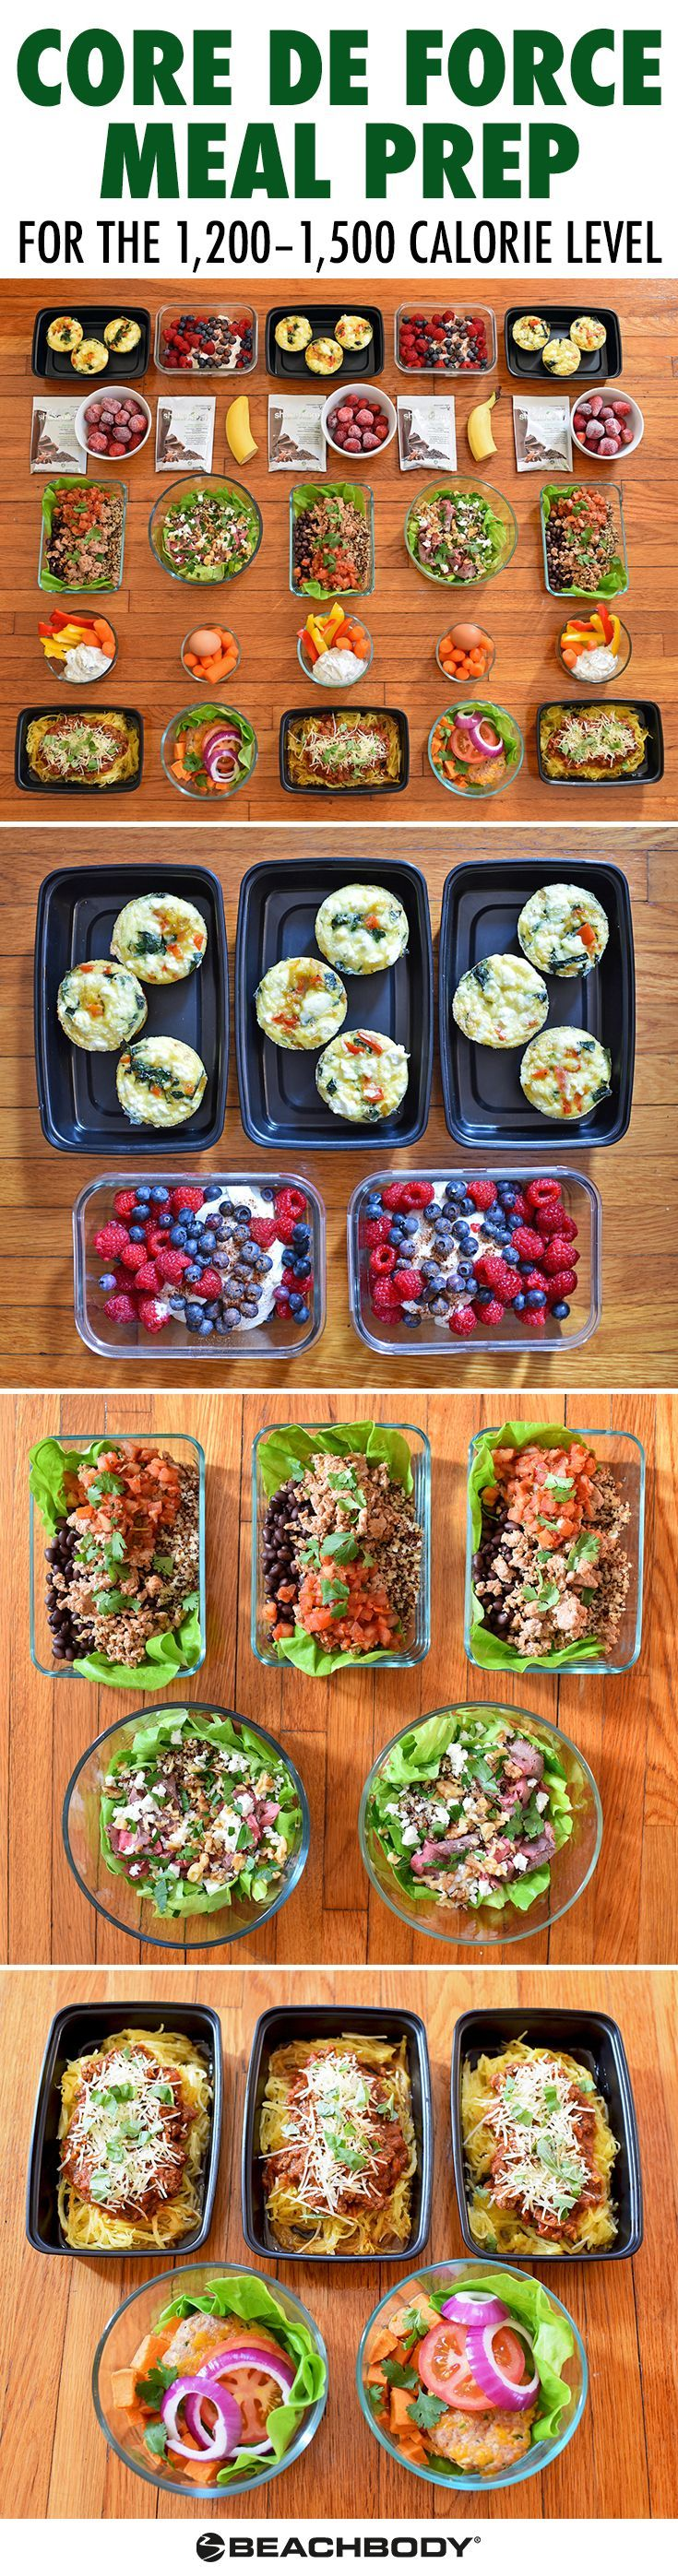 When you're trying to get in knock-out shape, you need to fuel those hard-hitting workouts with the right foods in the proper portions. The CORE DE FORCE Eating Plan makes planning – and eating! – healthy meals straightforward and delicious, so you can begin to see results faster. // meal prep // healthy // eating // lifestyle // core de force // Beachbody // http://BeachbodyBlog.com